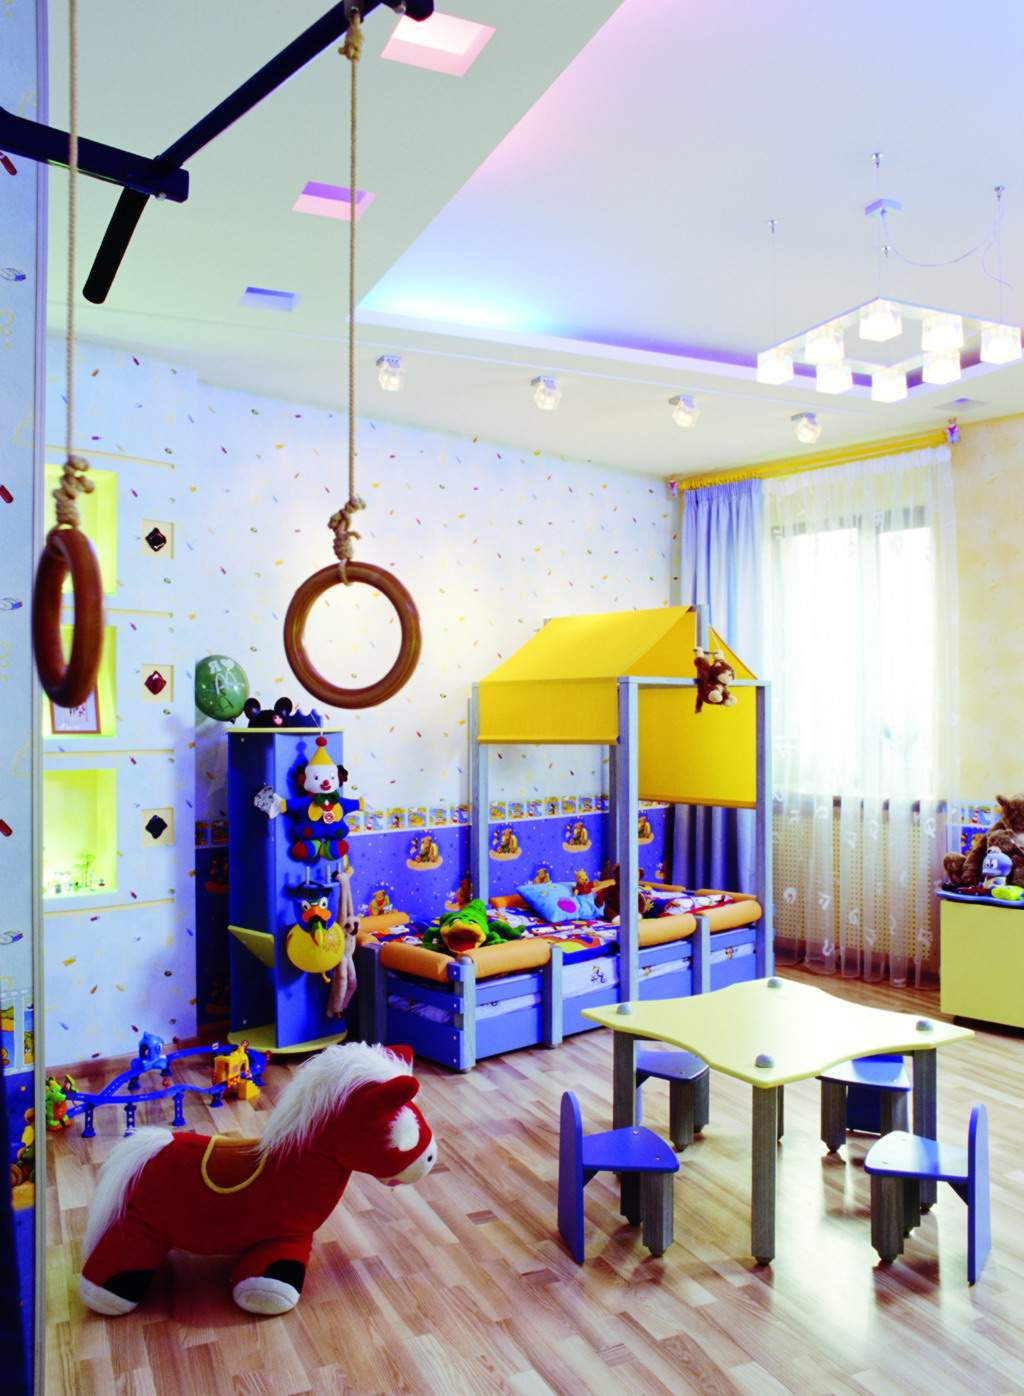 15 creative kids bedroom decorating ideas Best bedroom ideas for small rooms